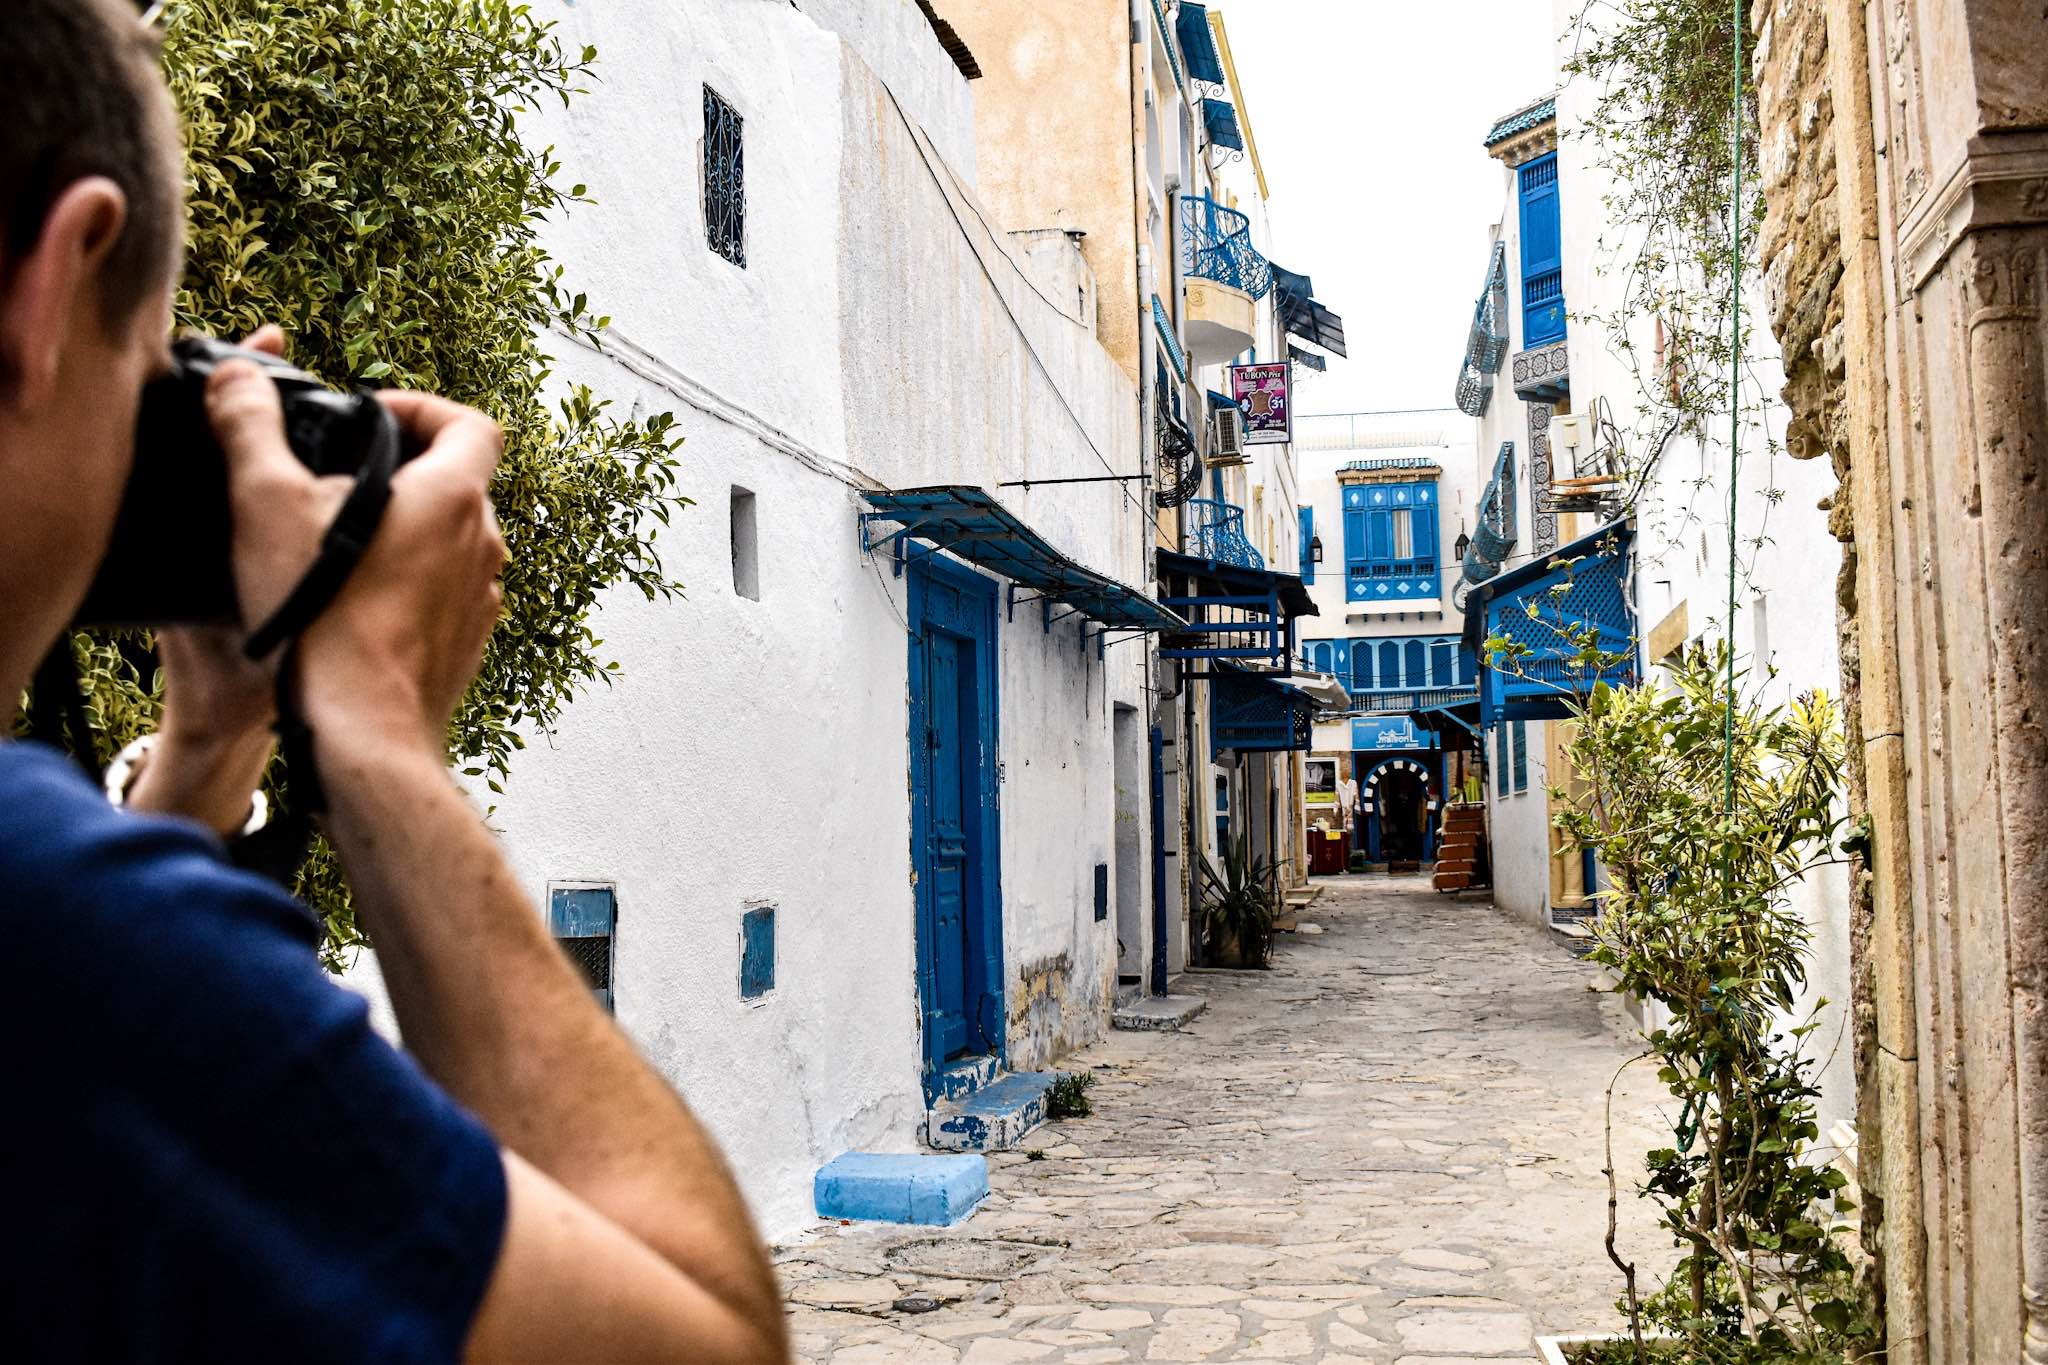 Alleyway in the Hammamet medina with photographer snapping a picture